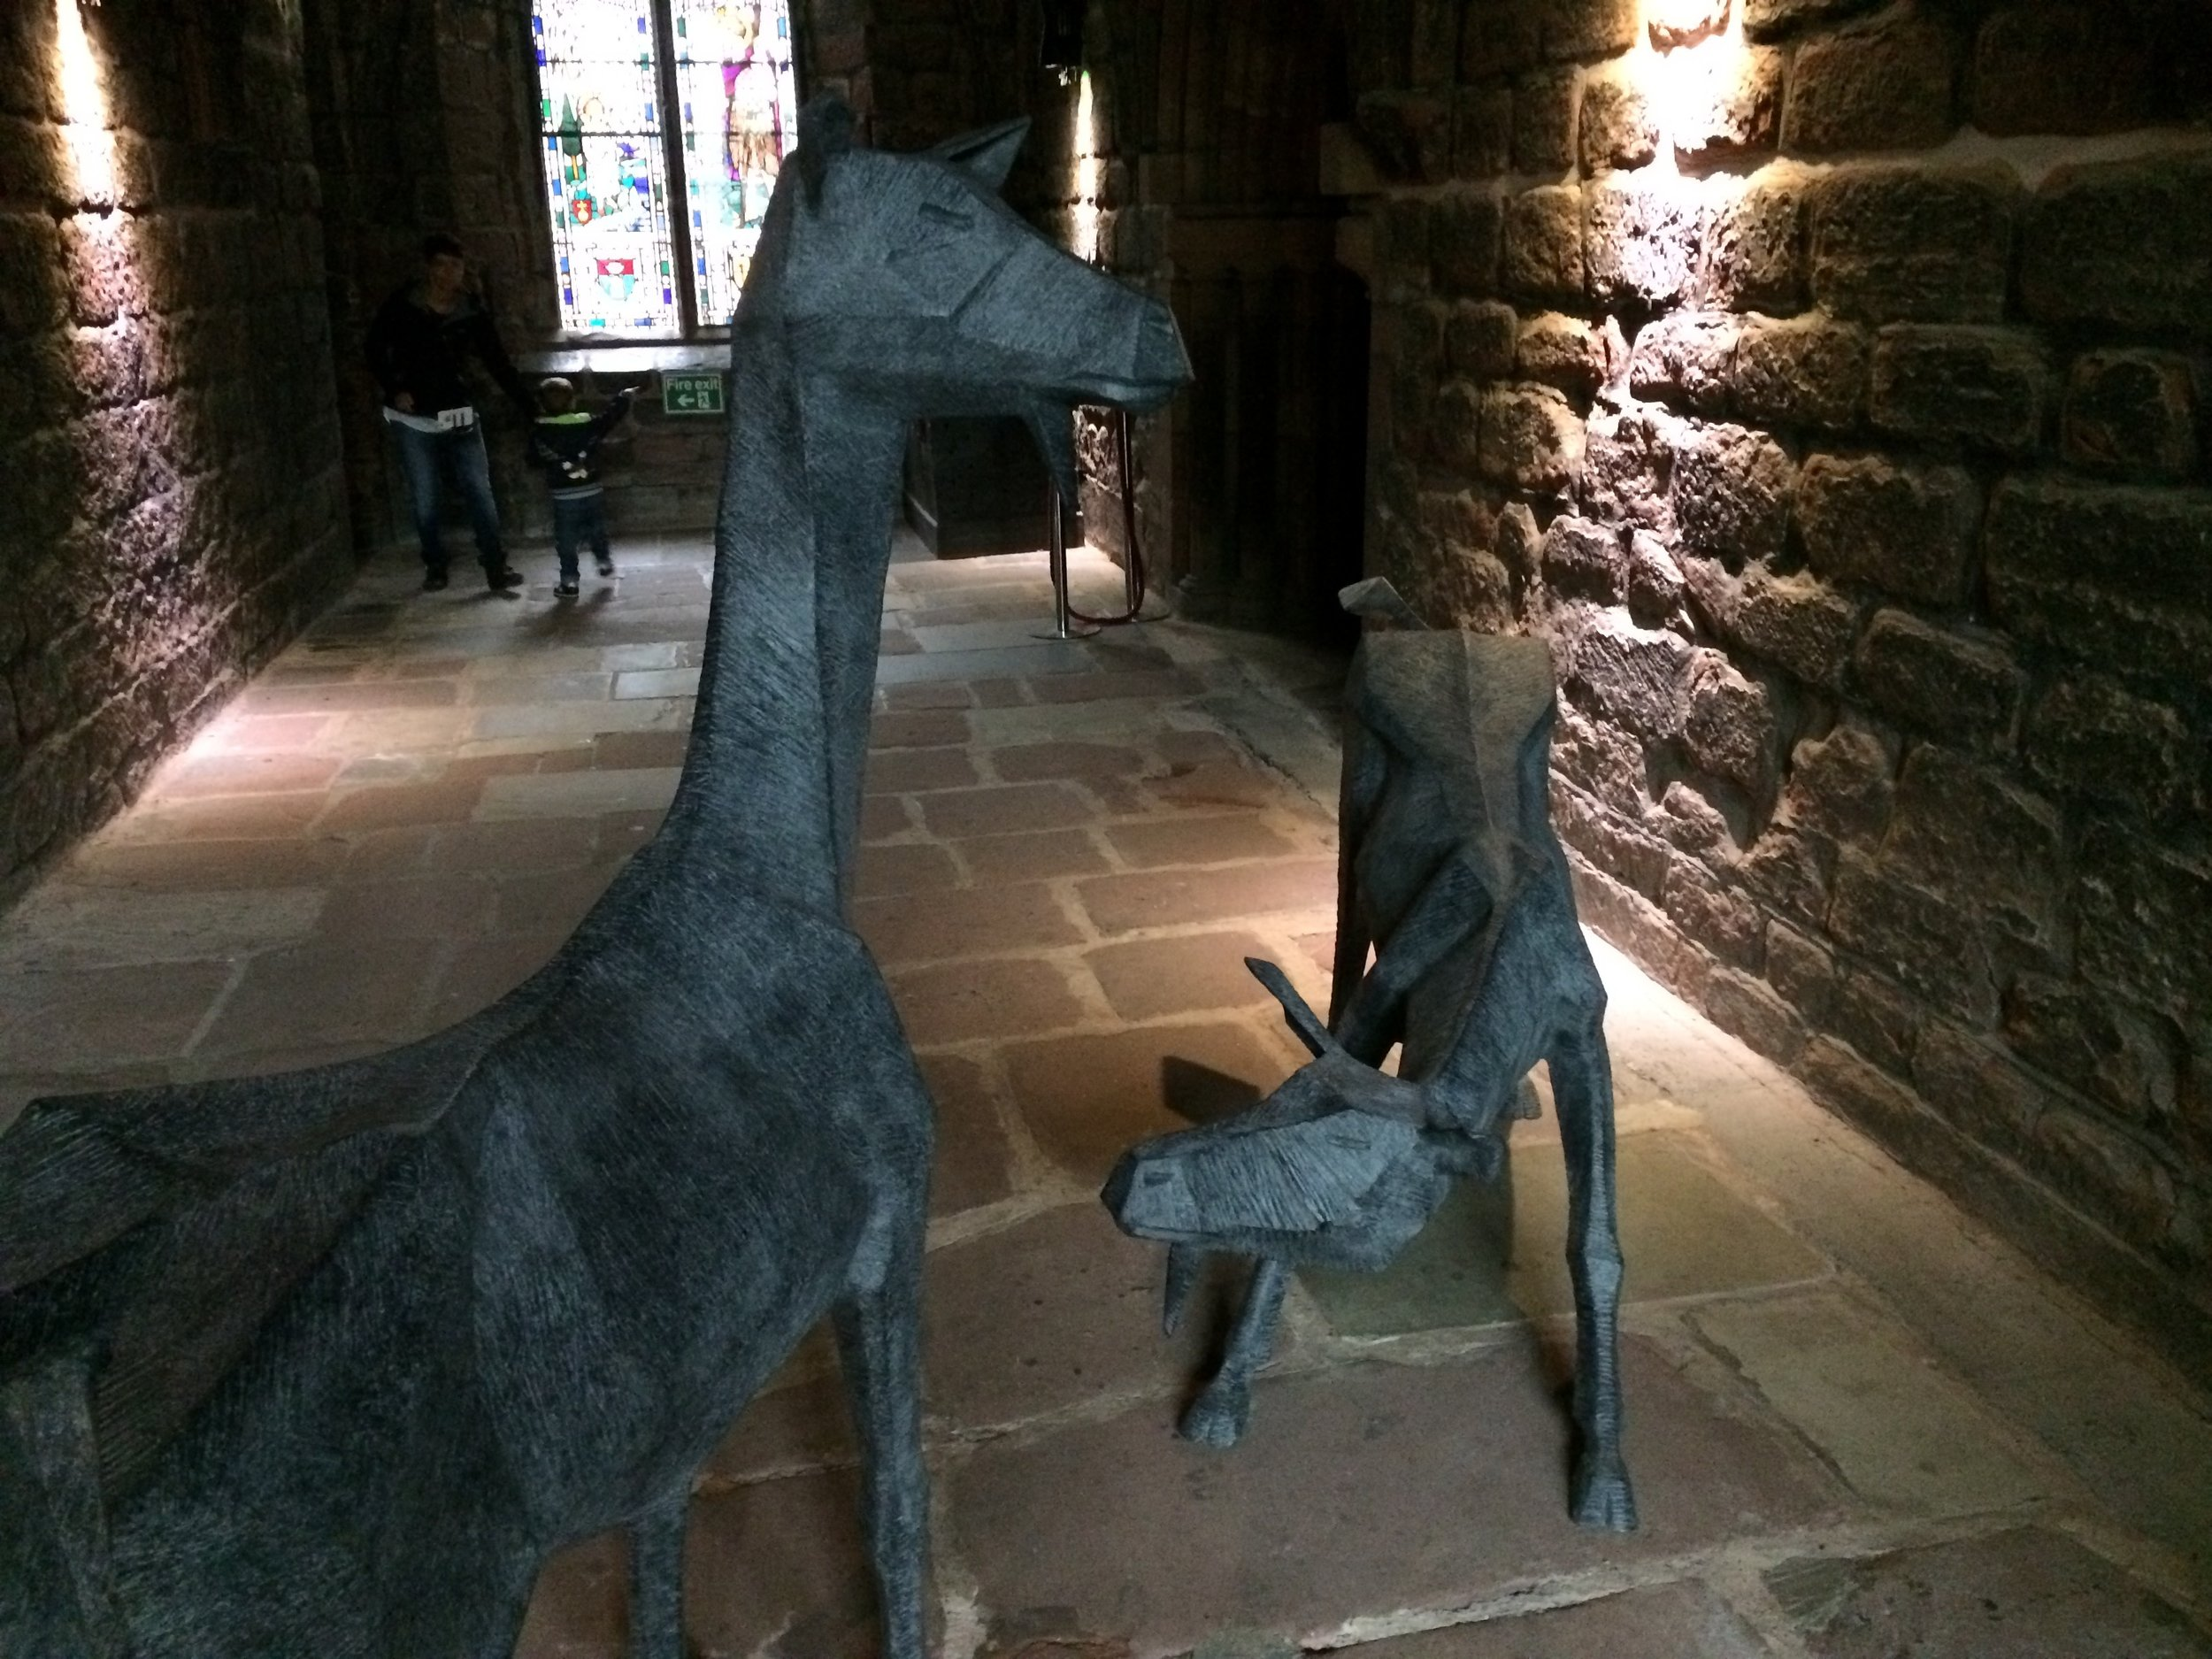 A great show - We spent a great few hours walking through the fantastic display of modern sculpture at Chester Cathedral. Go visit before it ends in October.